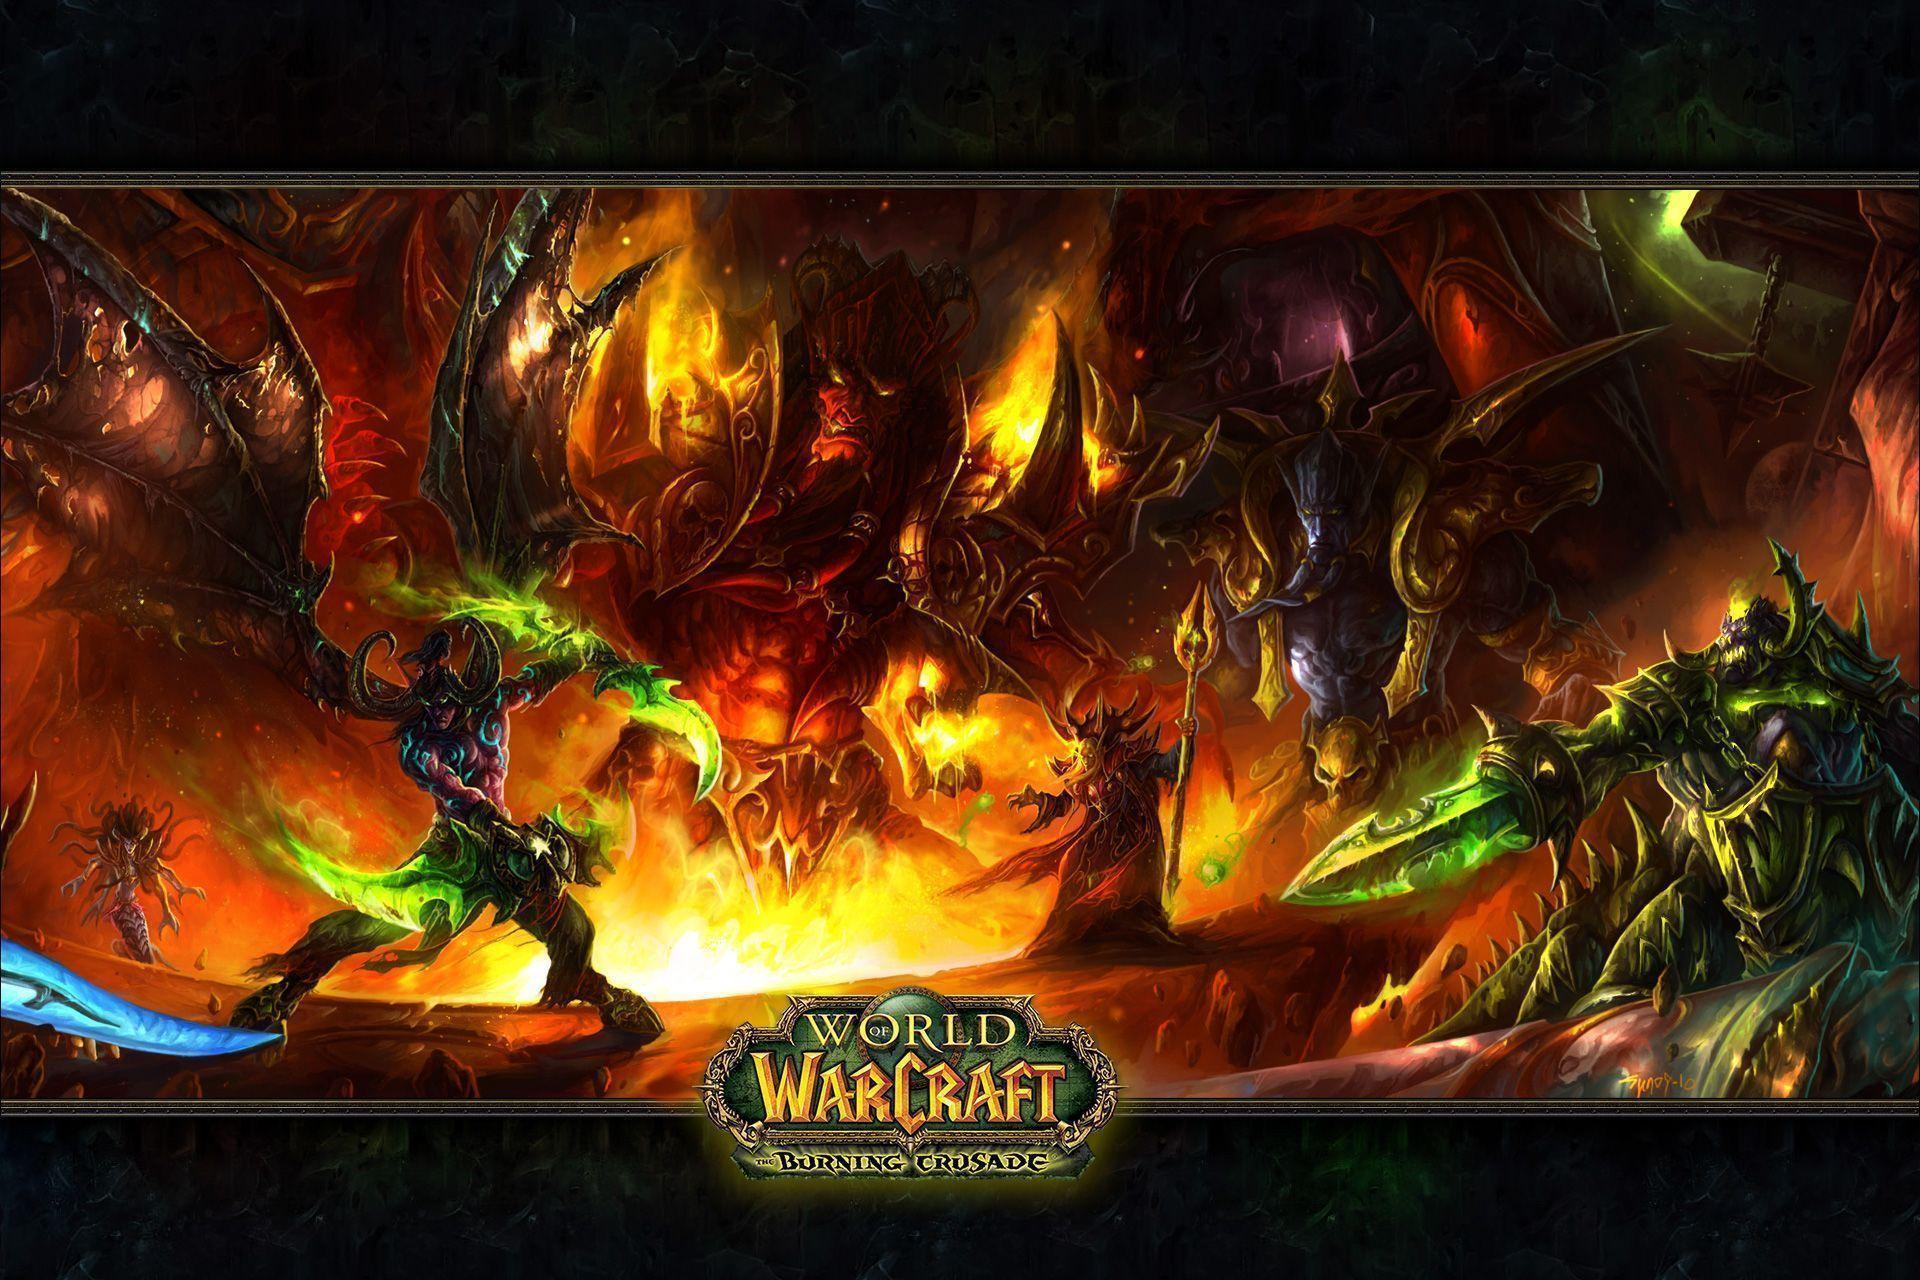 Best World of Warcraft Image 05